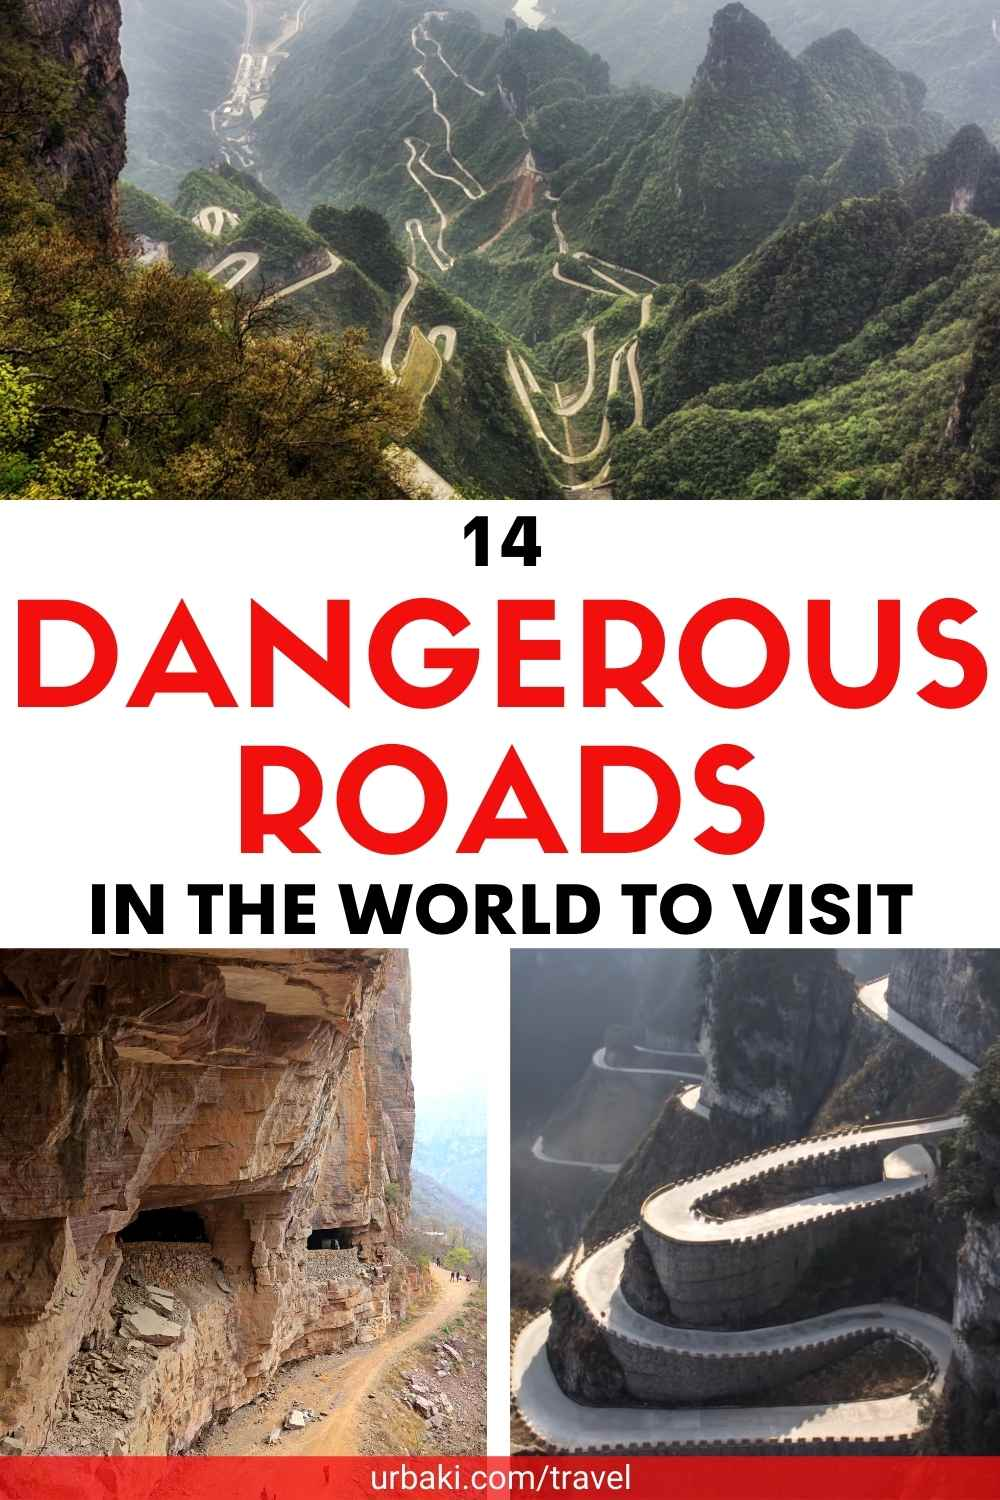 14 Dangerous Roads in the World to Visit